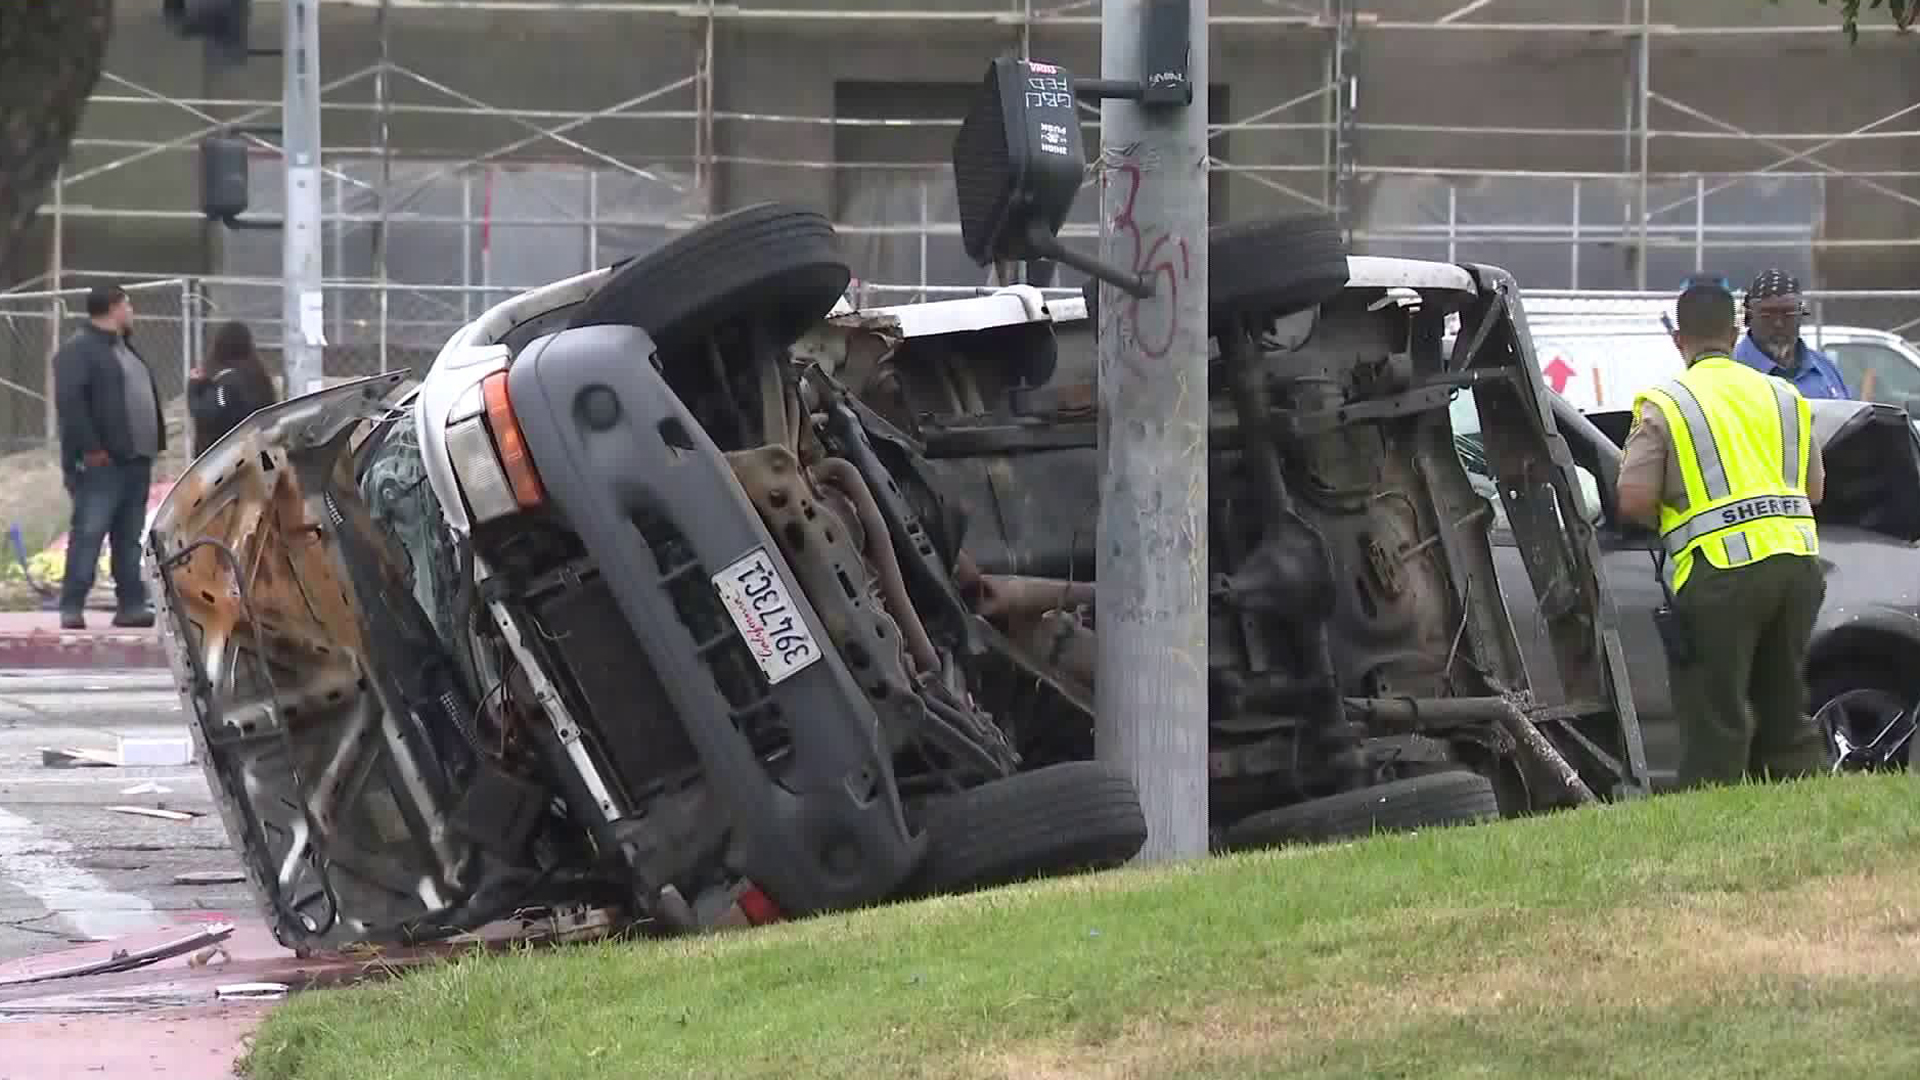 A vehicle involved in a pursuit crash is shown at the scene in Compton on June 24, 2019. (Credit: KTLA)